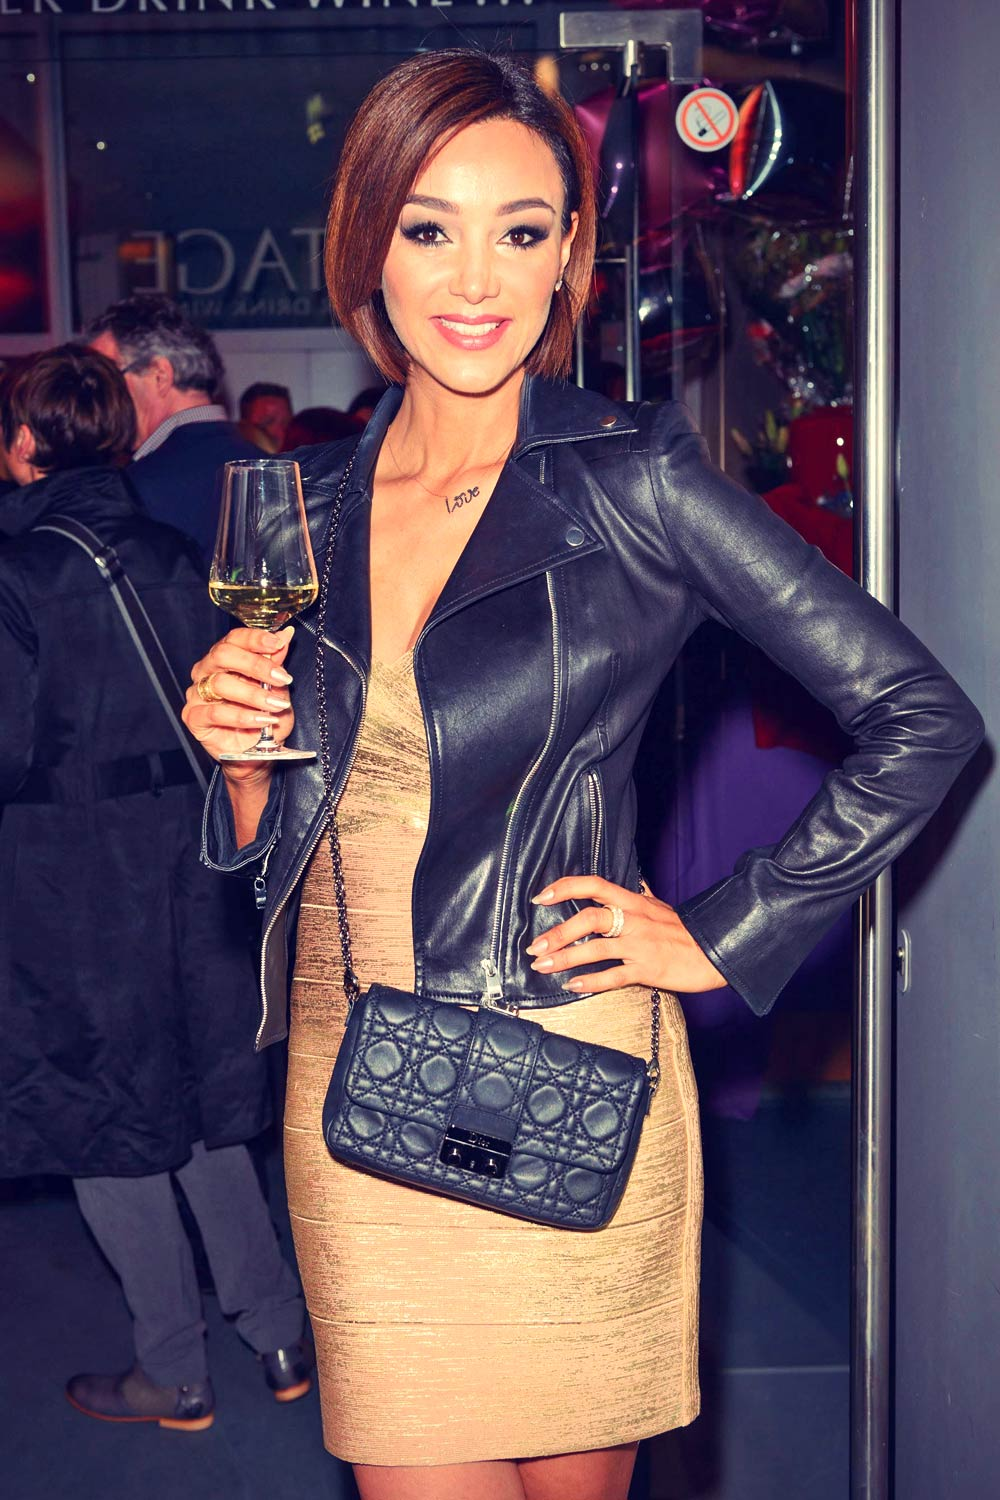 Verona pooth celebrating 50th birthday of katja burkhardt leather